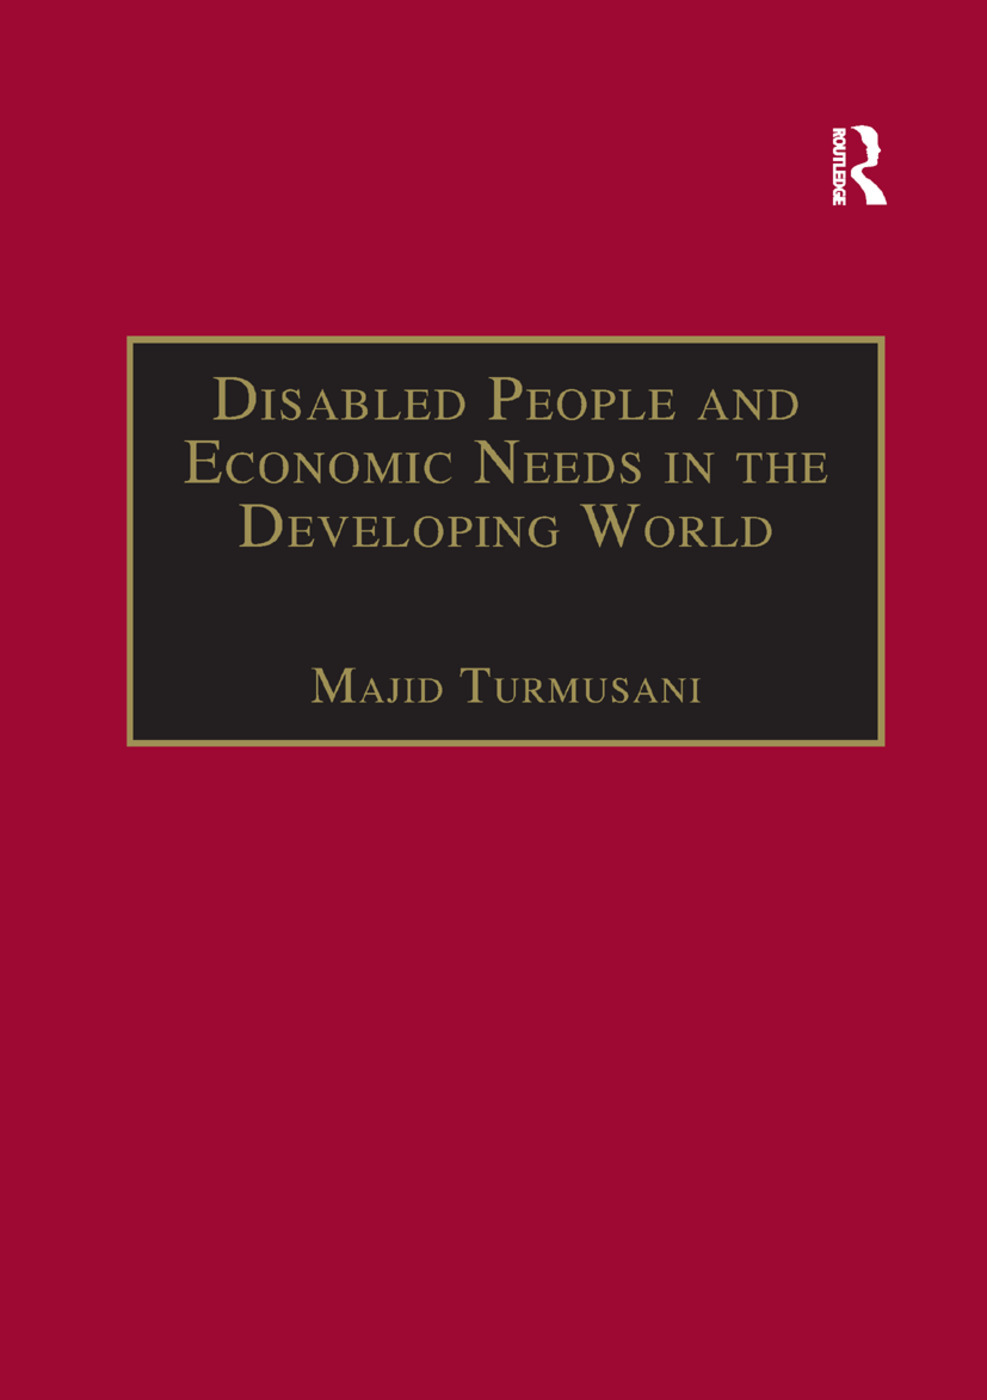 Disabled People and Economic Needs in the Developing World: A Political Perspective from Jordan book cover